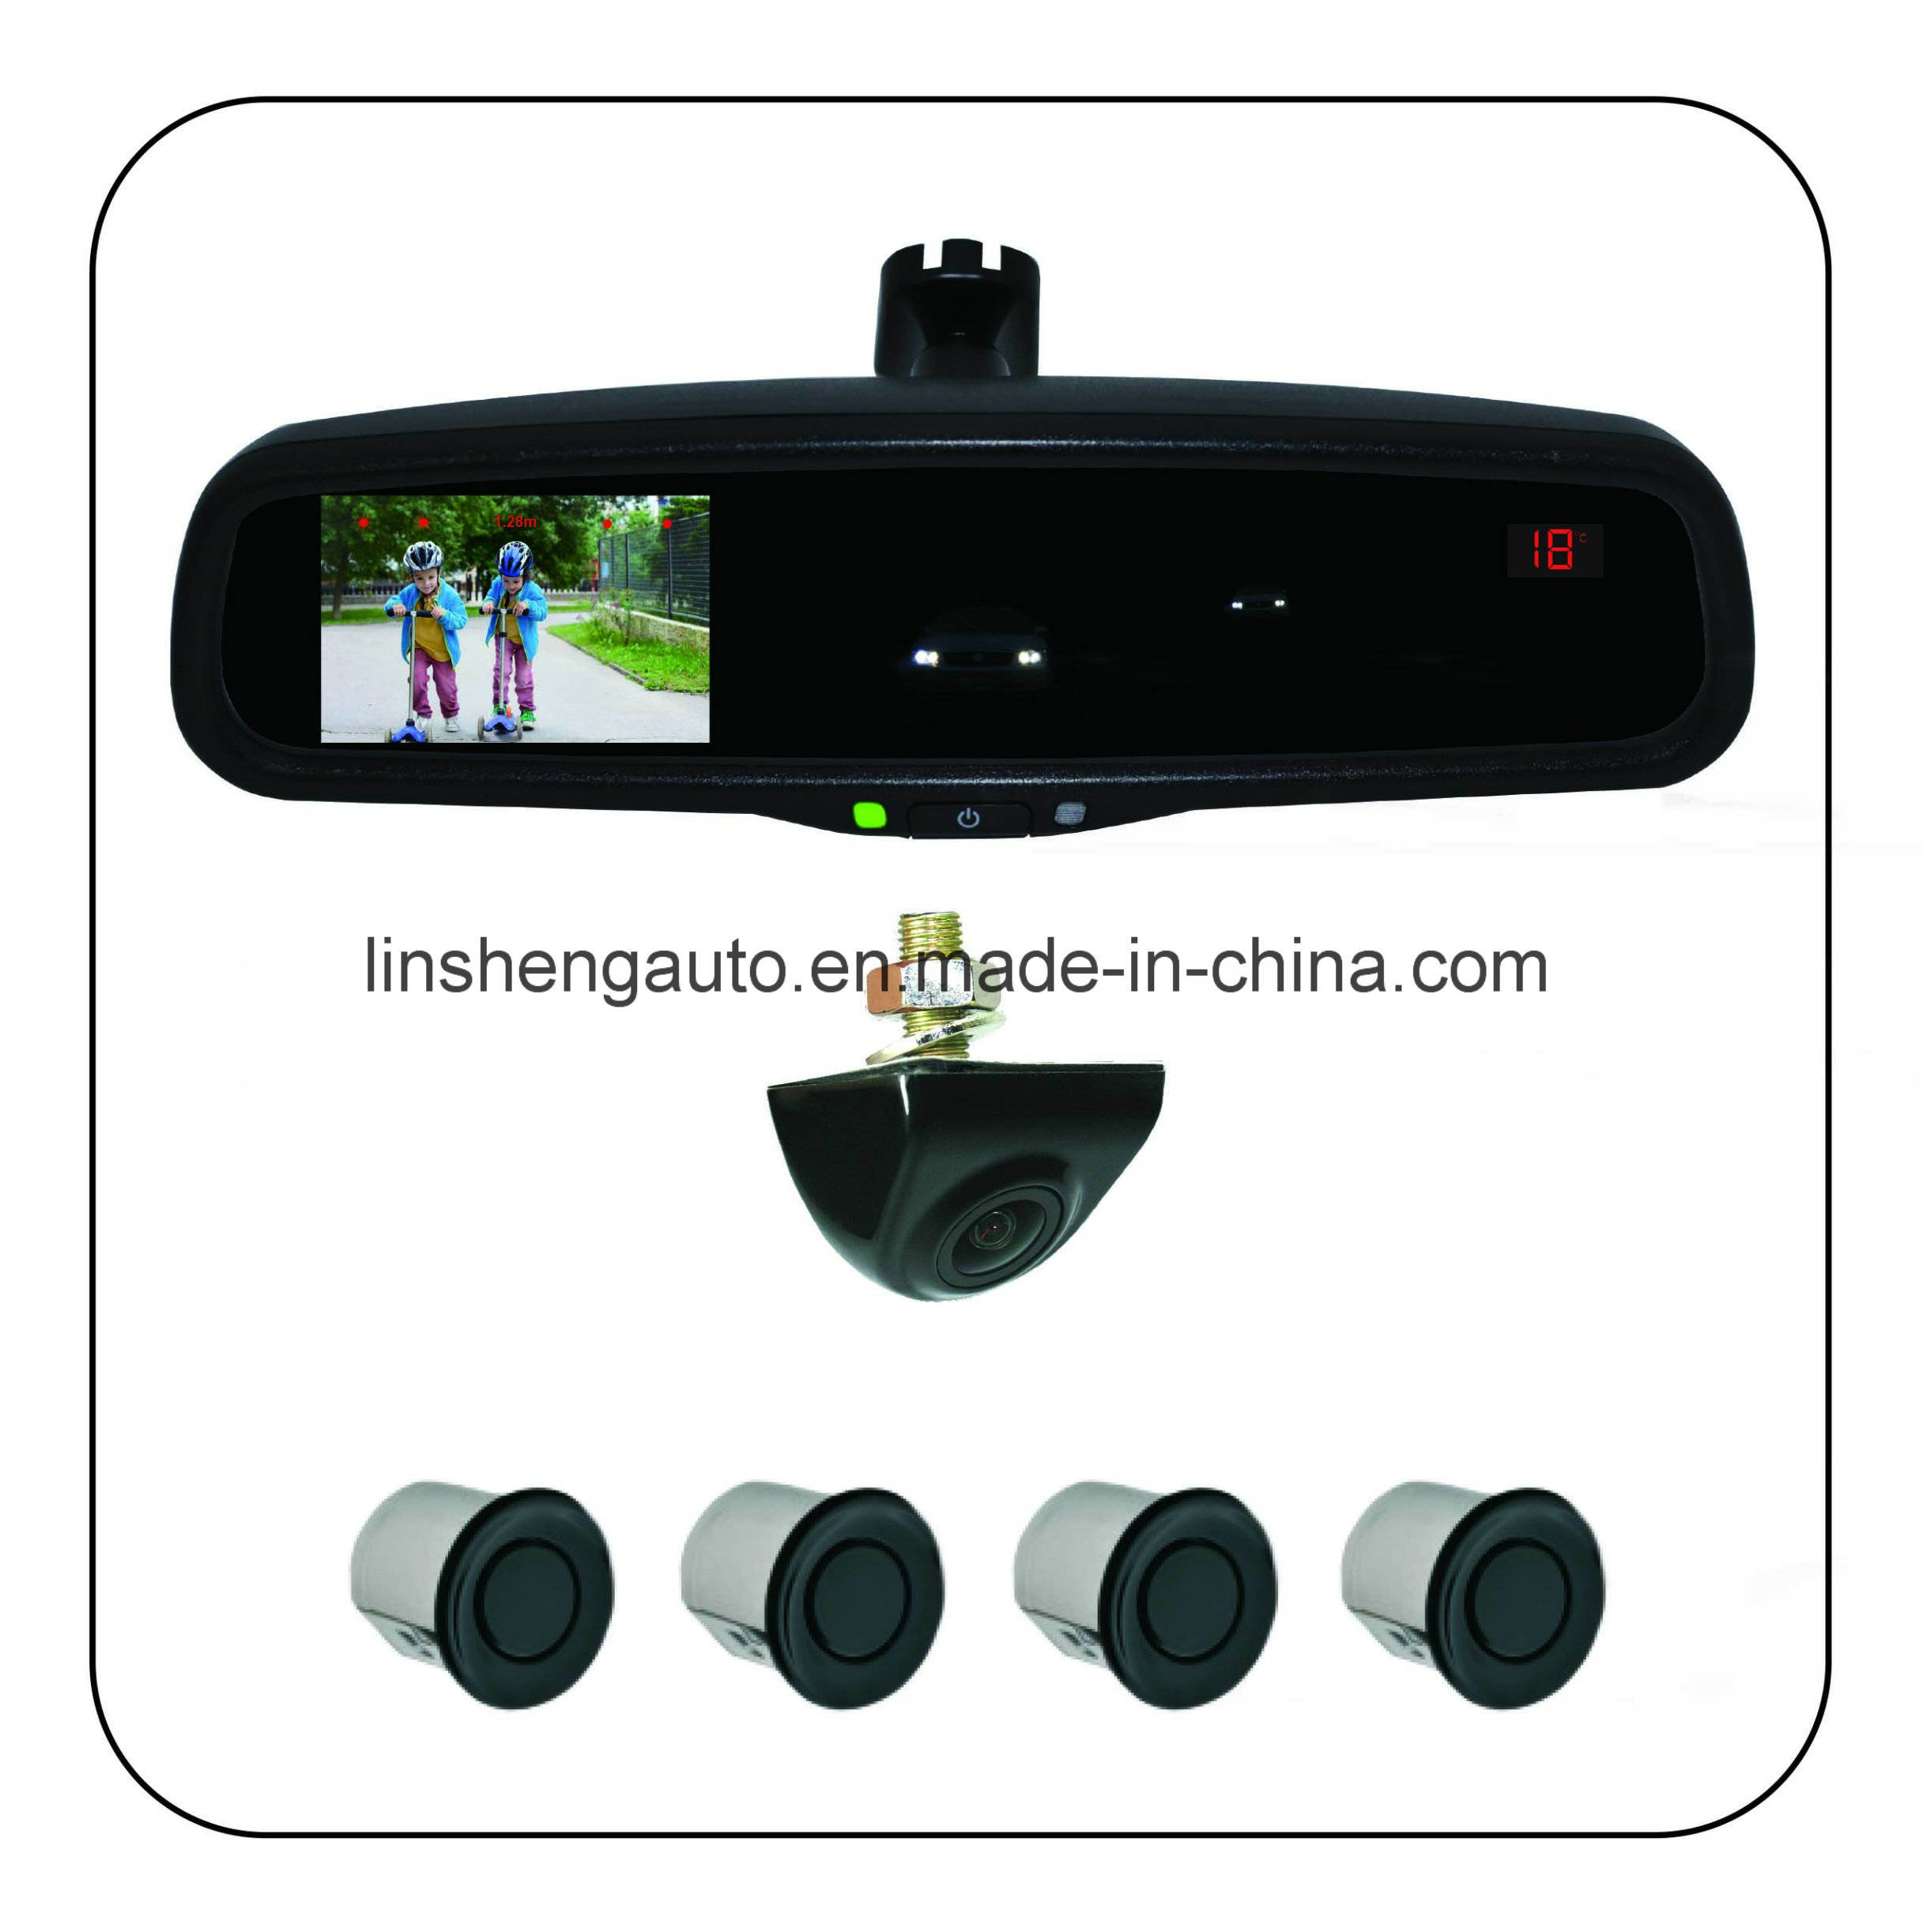 """Rearview Mirror with 4.3"""" Auto-Dimming LCD Monitor, Distance and Compass Display"""